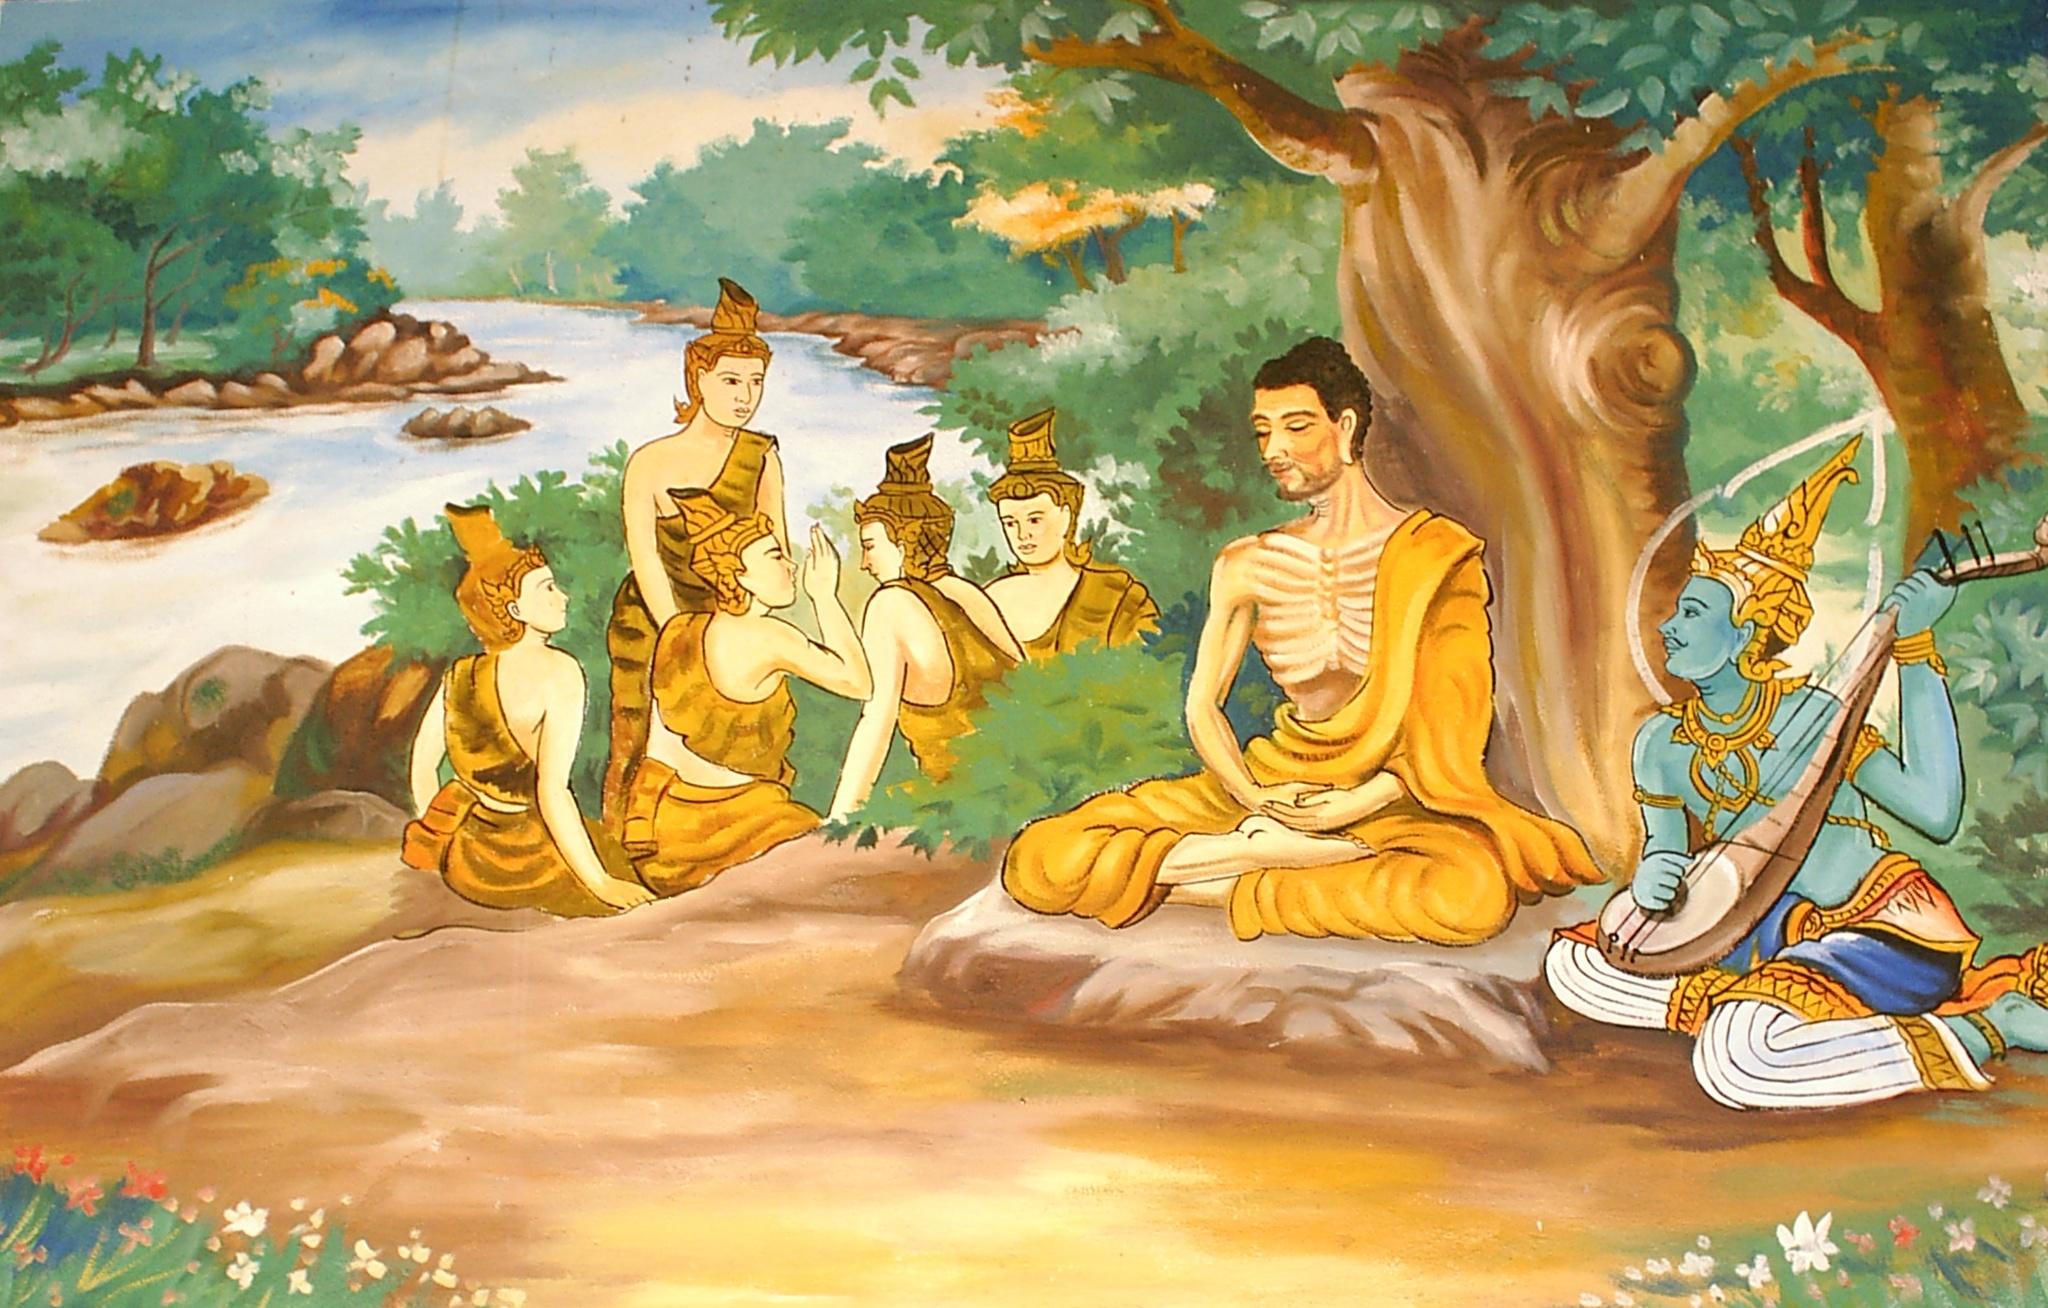 File:Ascetic Bodhisatta Gotama with the Group of Five.jpg ...